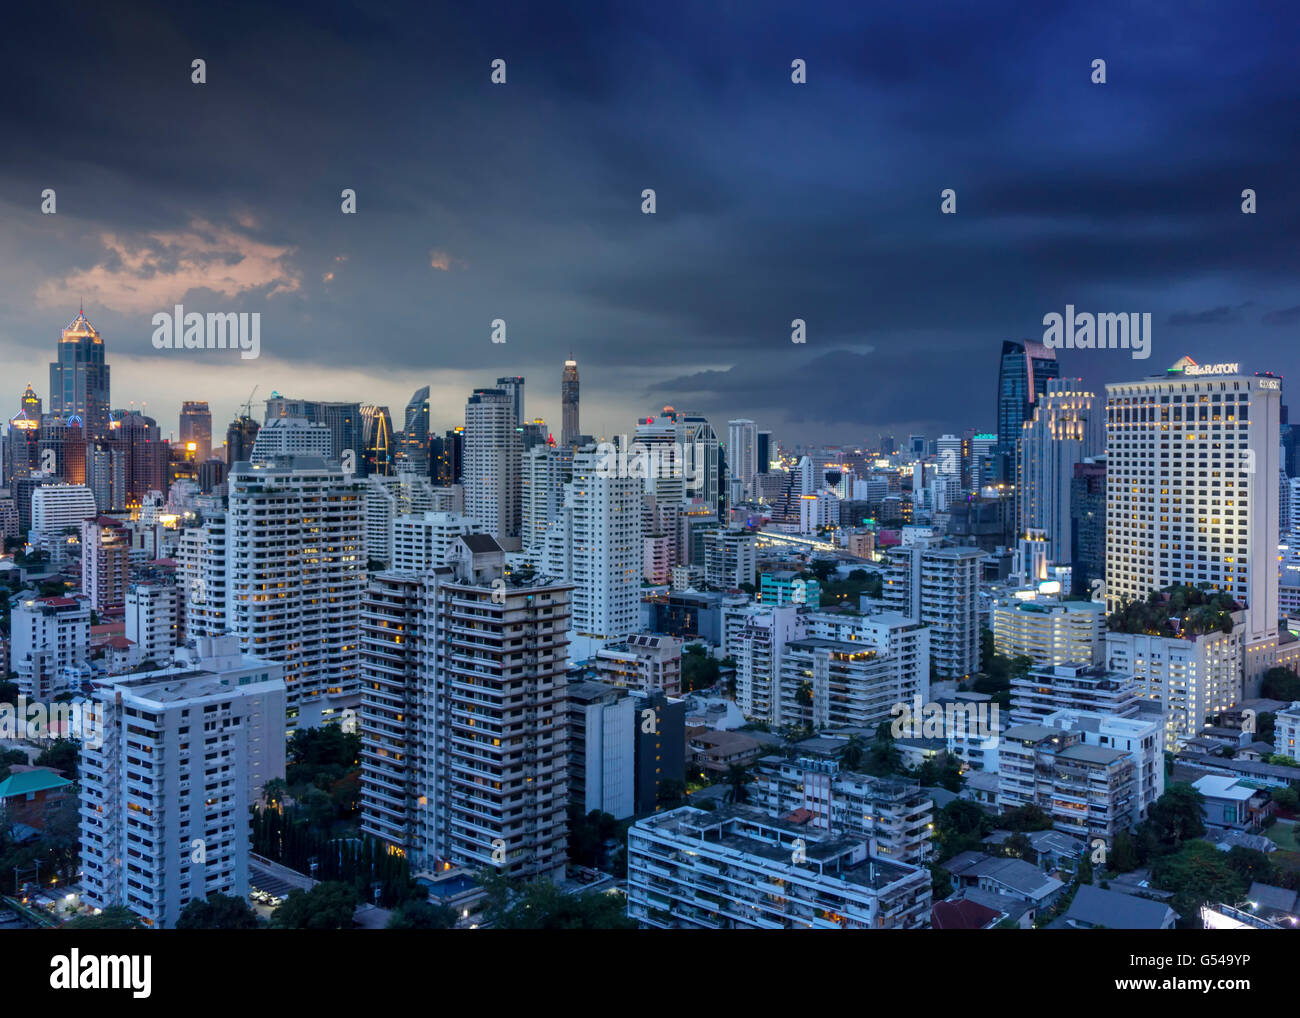 The Skyline of Bangkok with heavy monsoon clouds - Stock Image